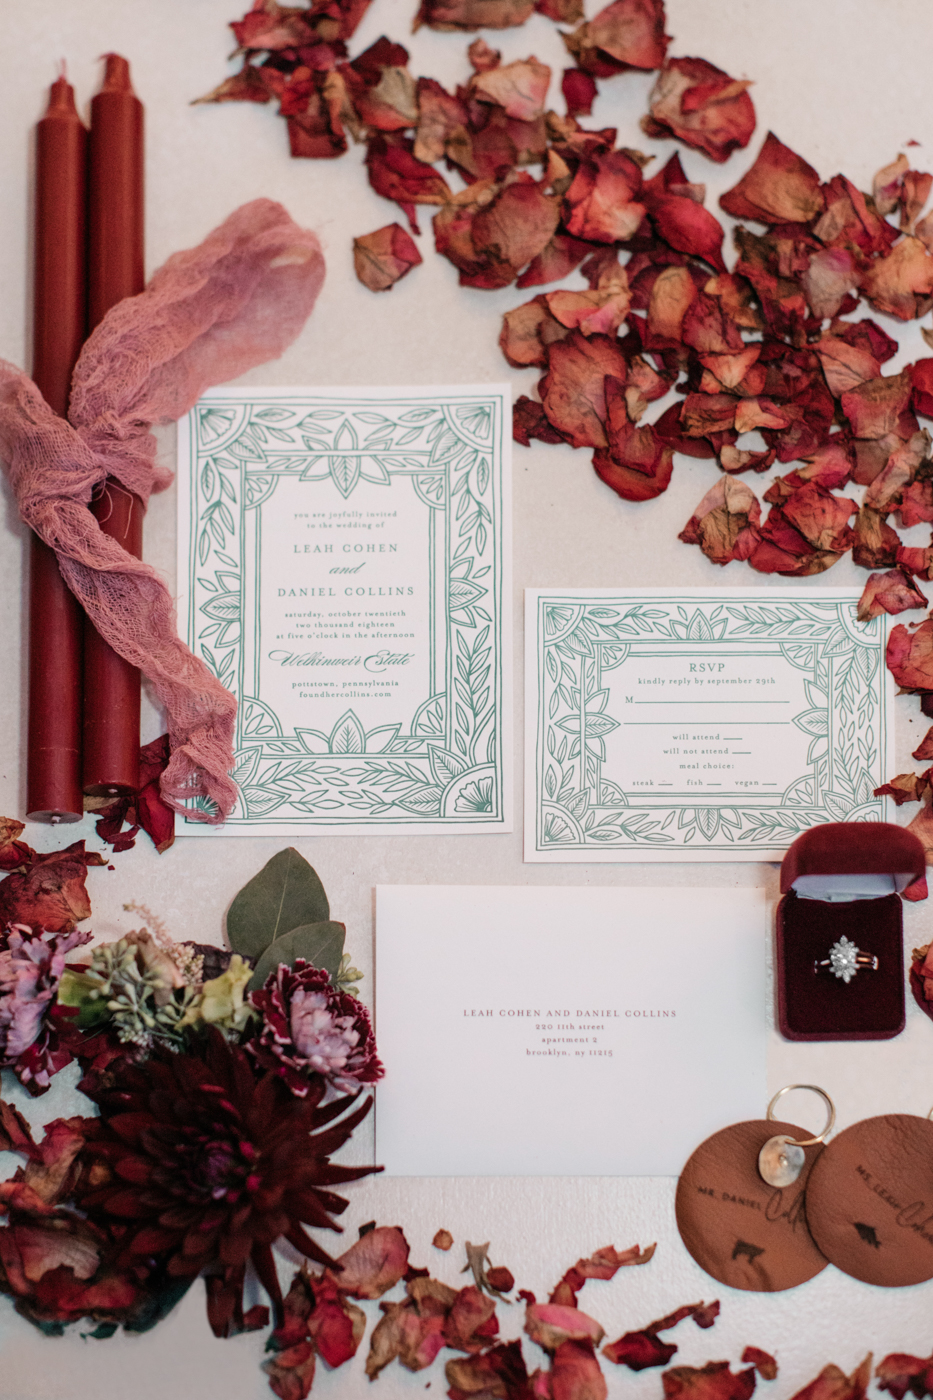 welkinweir-philadelphia-mainline-elegant-luxury-rustic-country-estate-wedding-photography-philly-photographer-fall-124.jpg